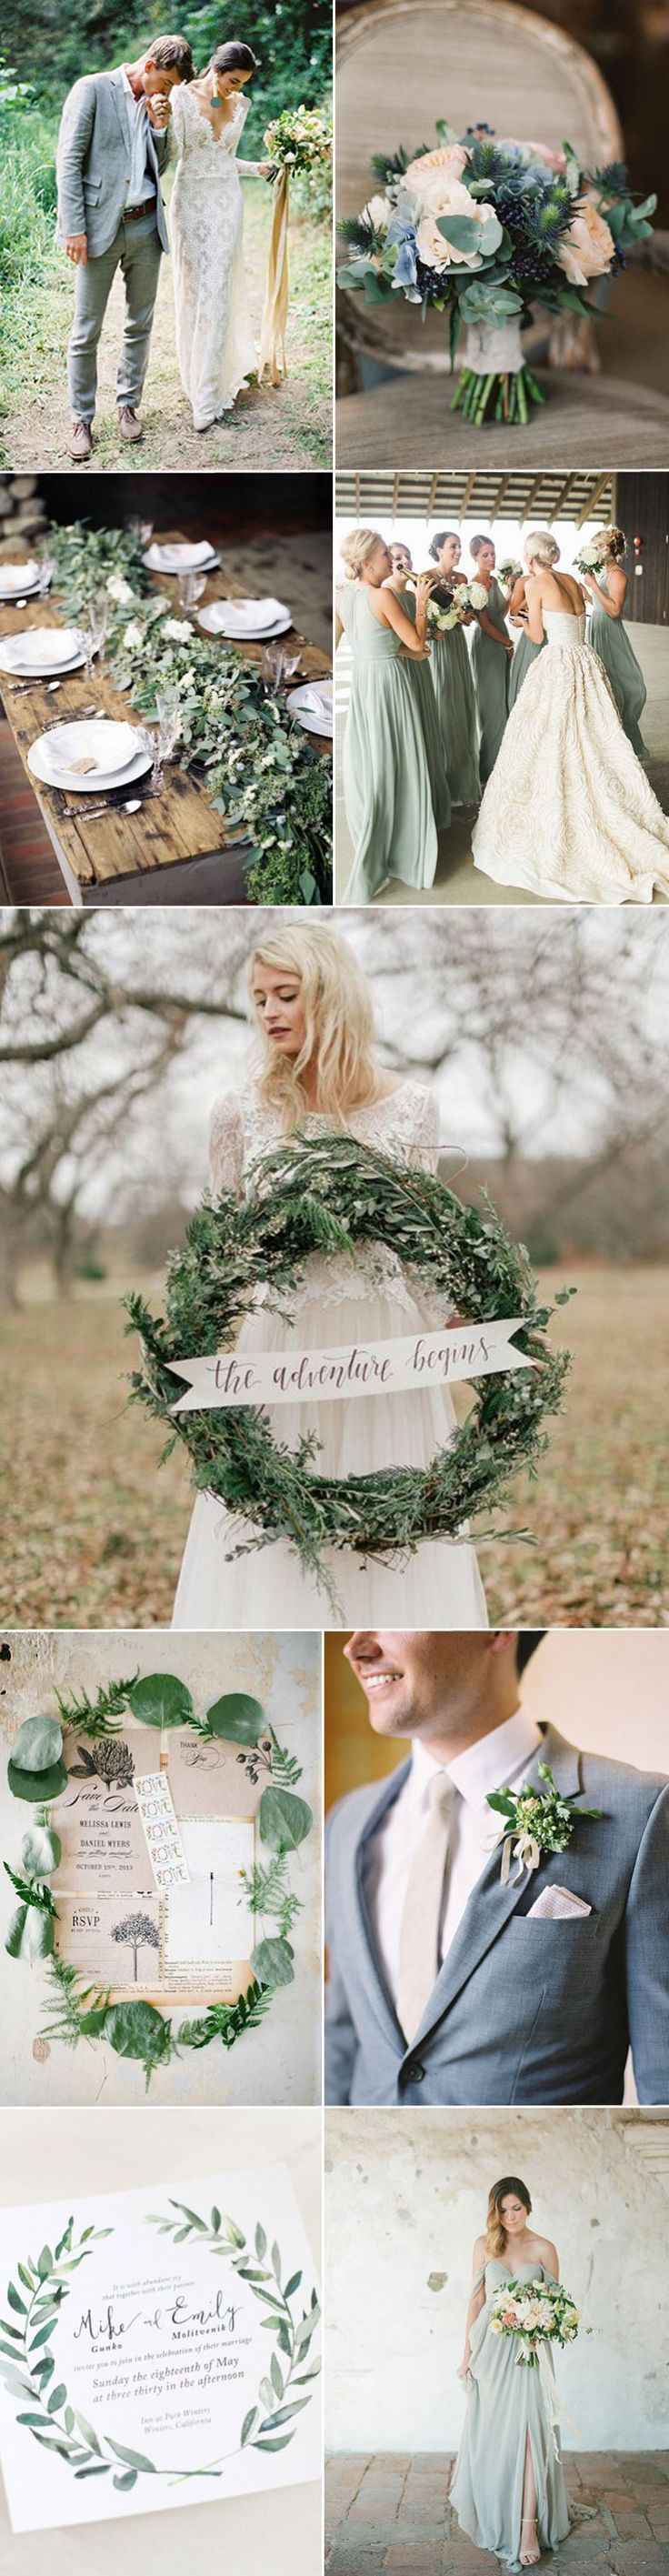 best a once in a lifetime love images on pinterest wedding